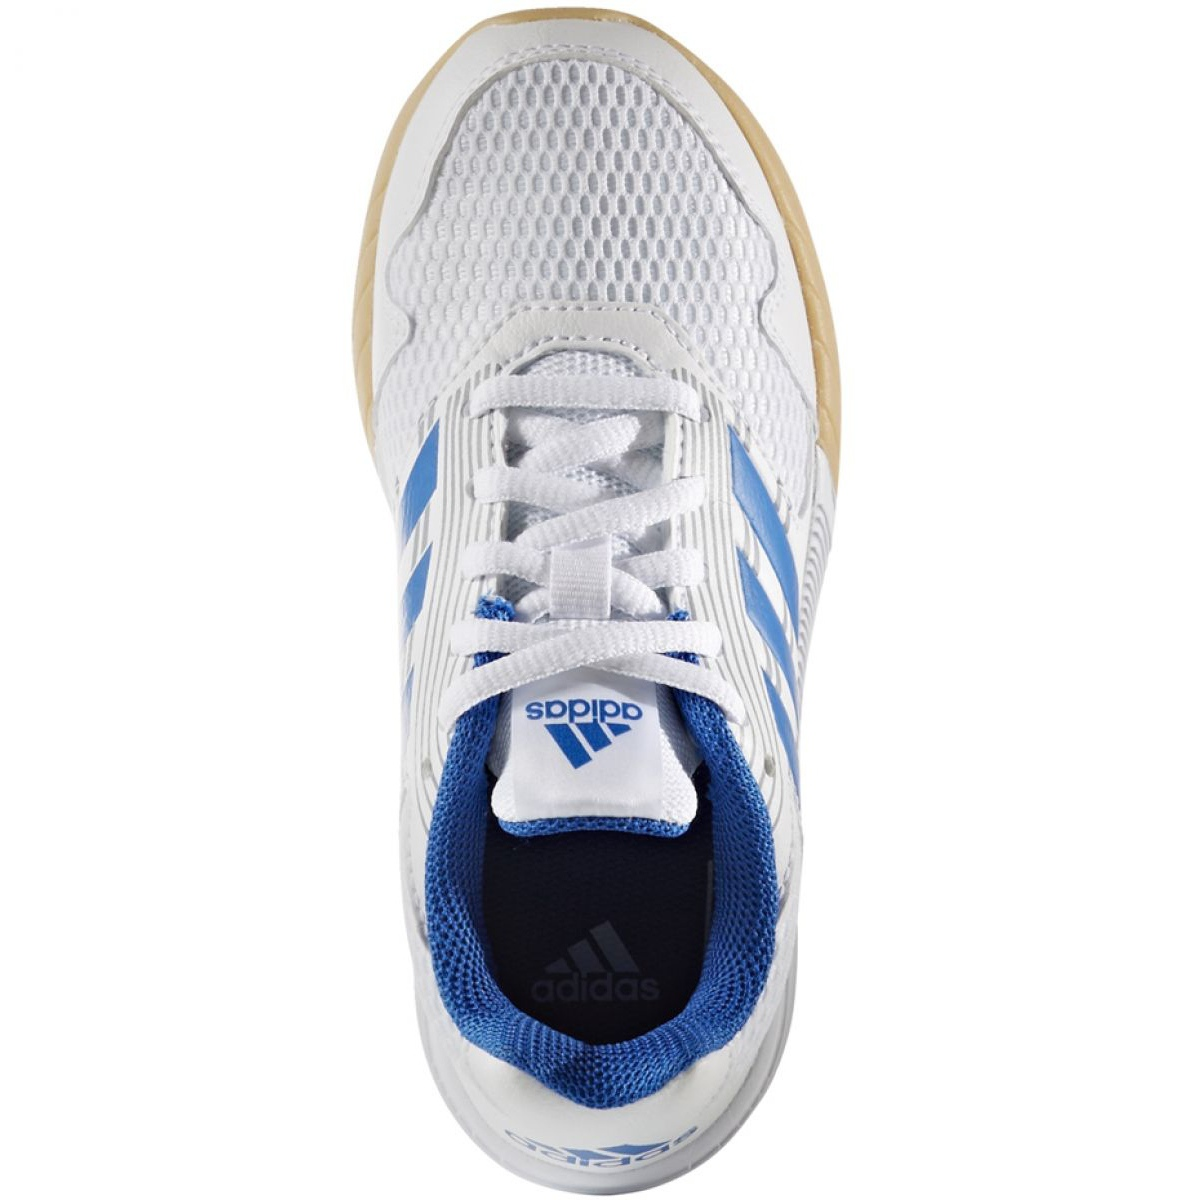 Sapatos Adidas Alta Run Jr BA9426 branco